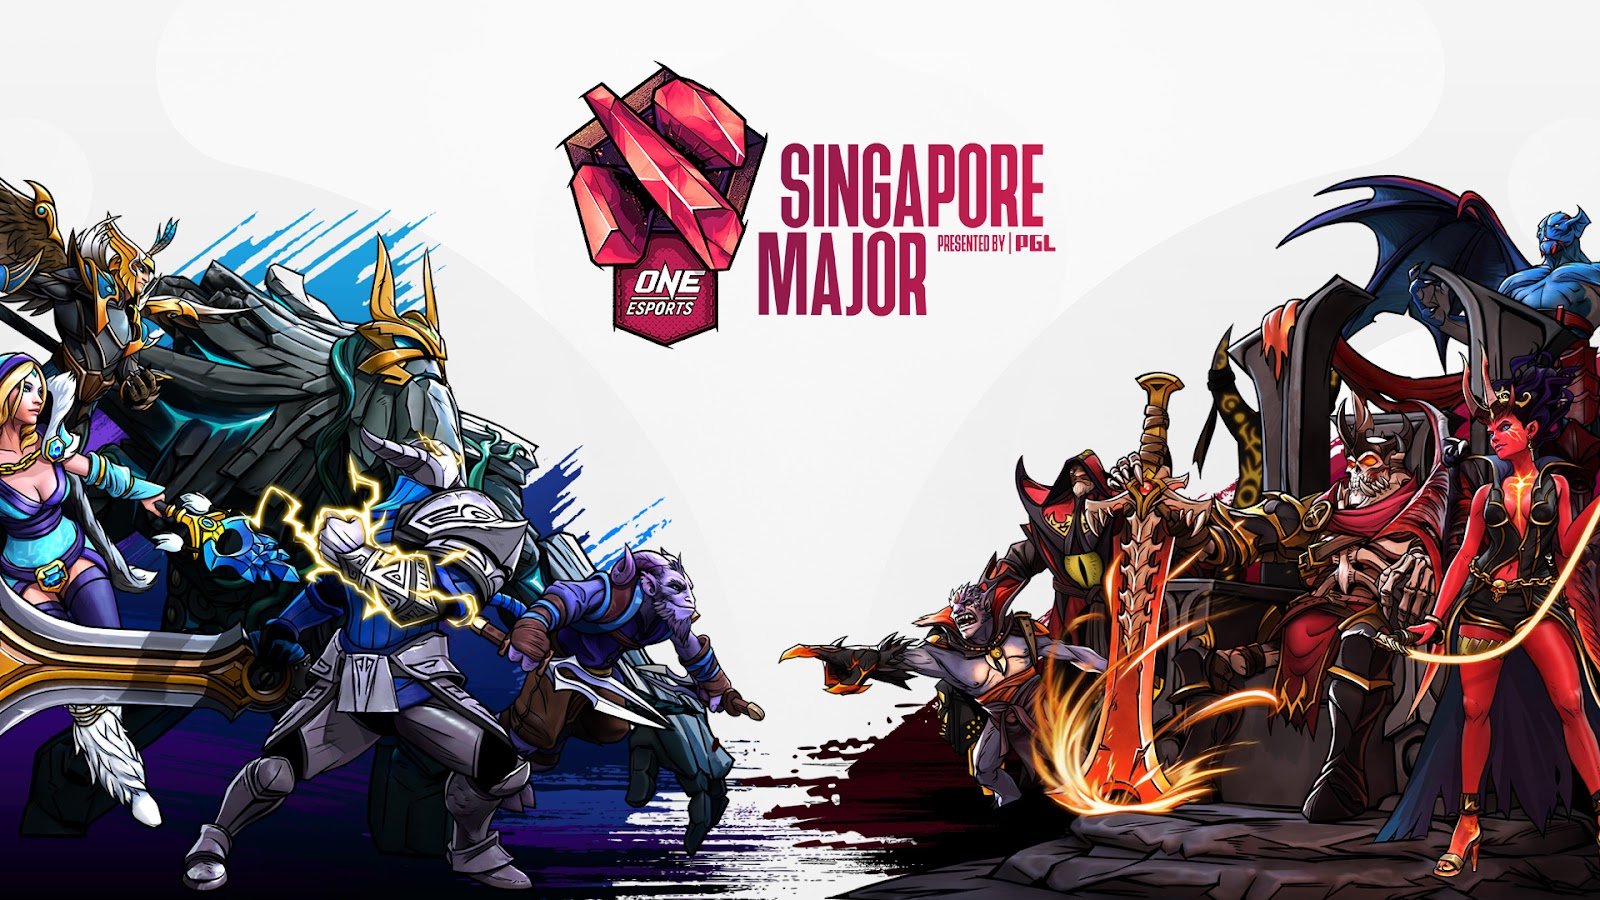 The ultimate Dota 2 competition is here. The 2021 edition of the Singapore Major is set to be more star-studded than ever